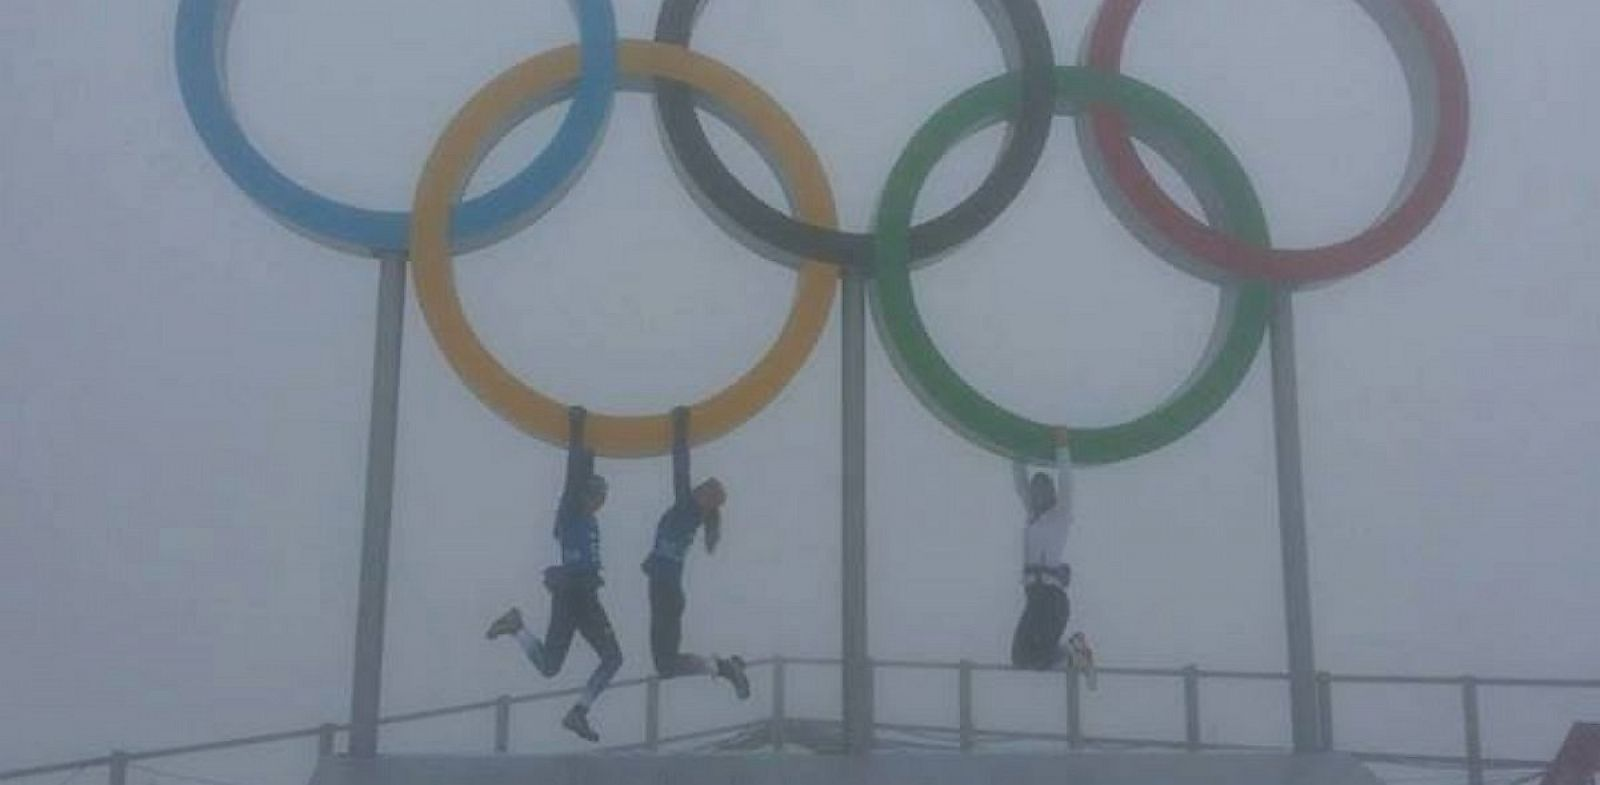 "PHOTO: Sara Studebaker posted this photo to Facebook, ""Too foggy for biathlon, but we had a fun morning anyway!"""